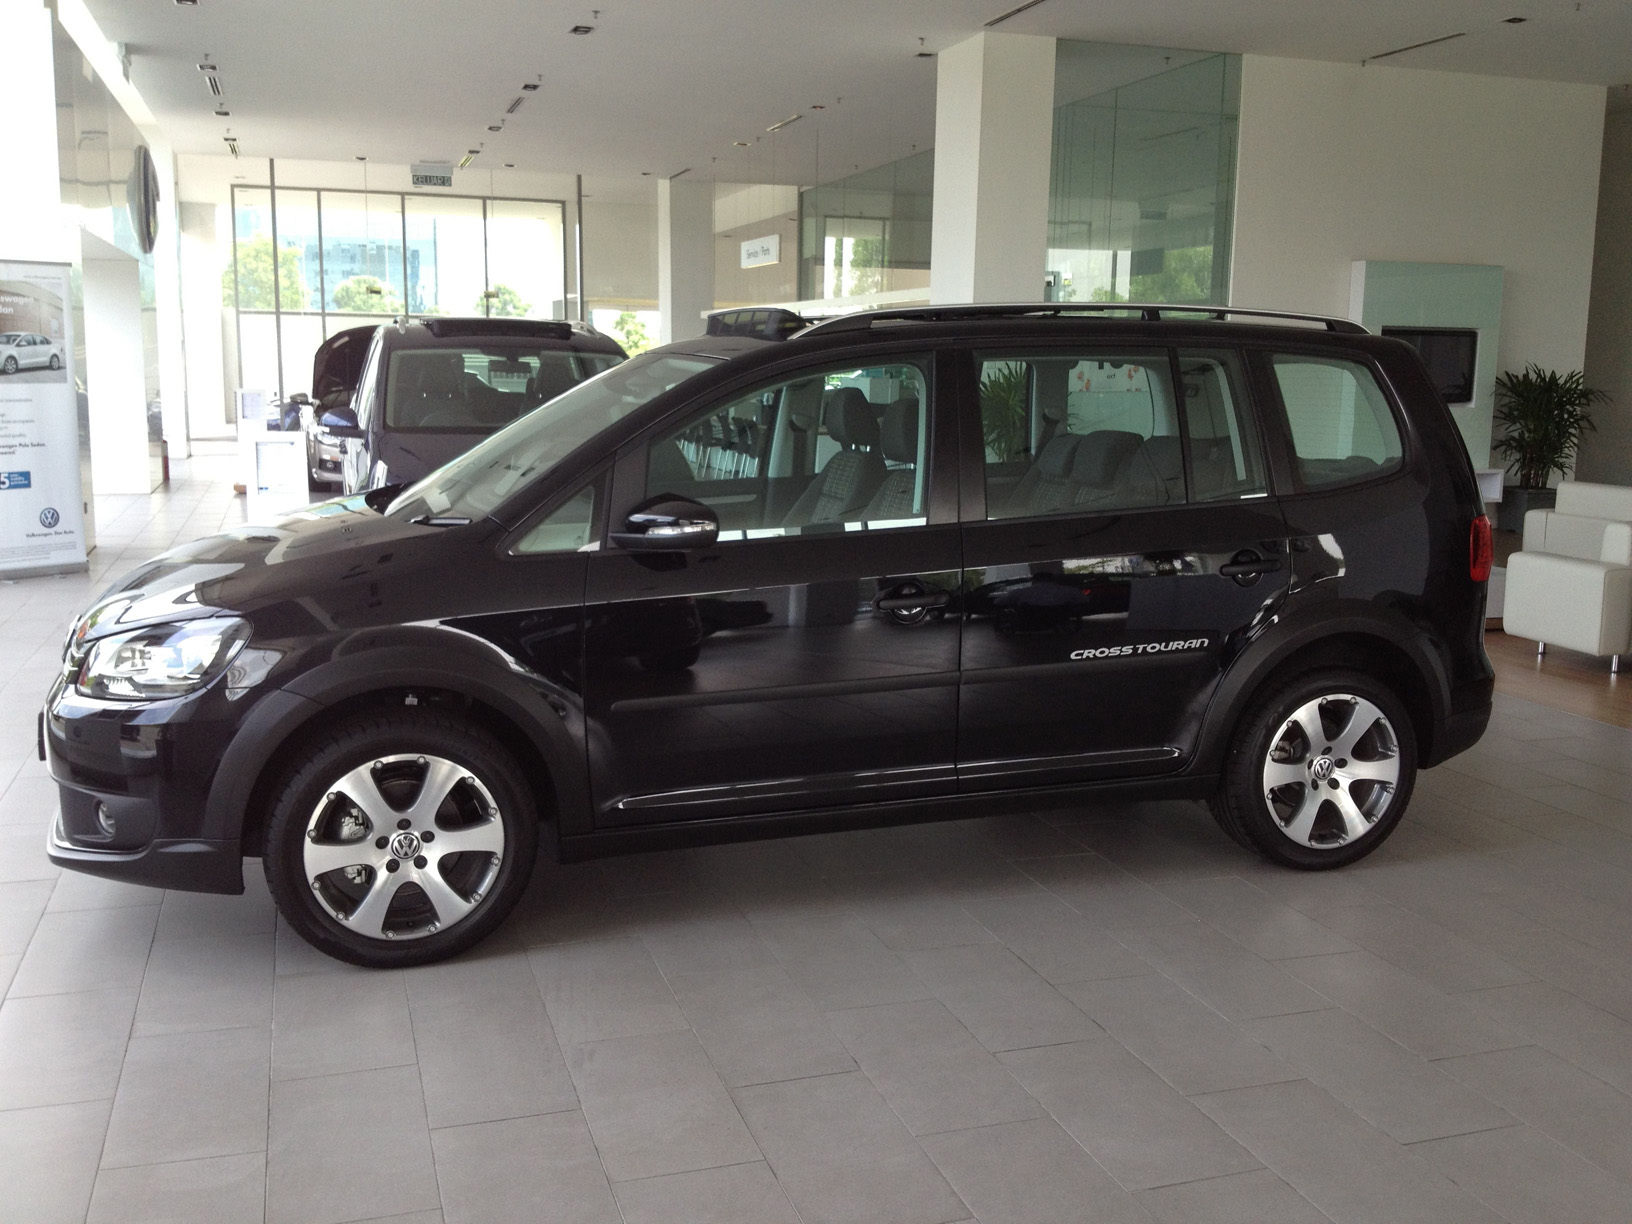 the volkswagen cross touran your vehicle in surviving a. Black Bedroom Furniture Sets. Home Design Ideas